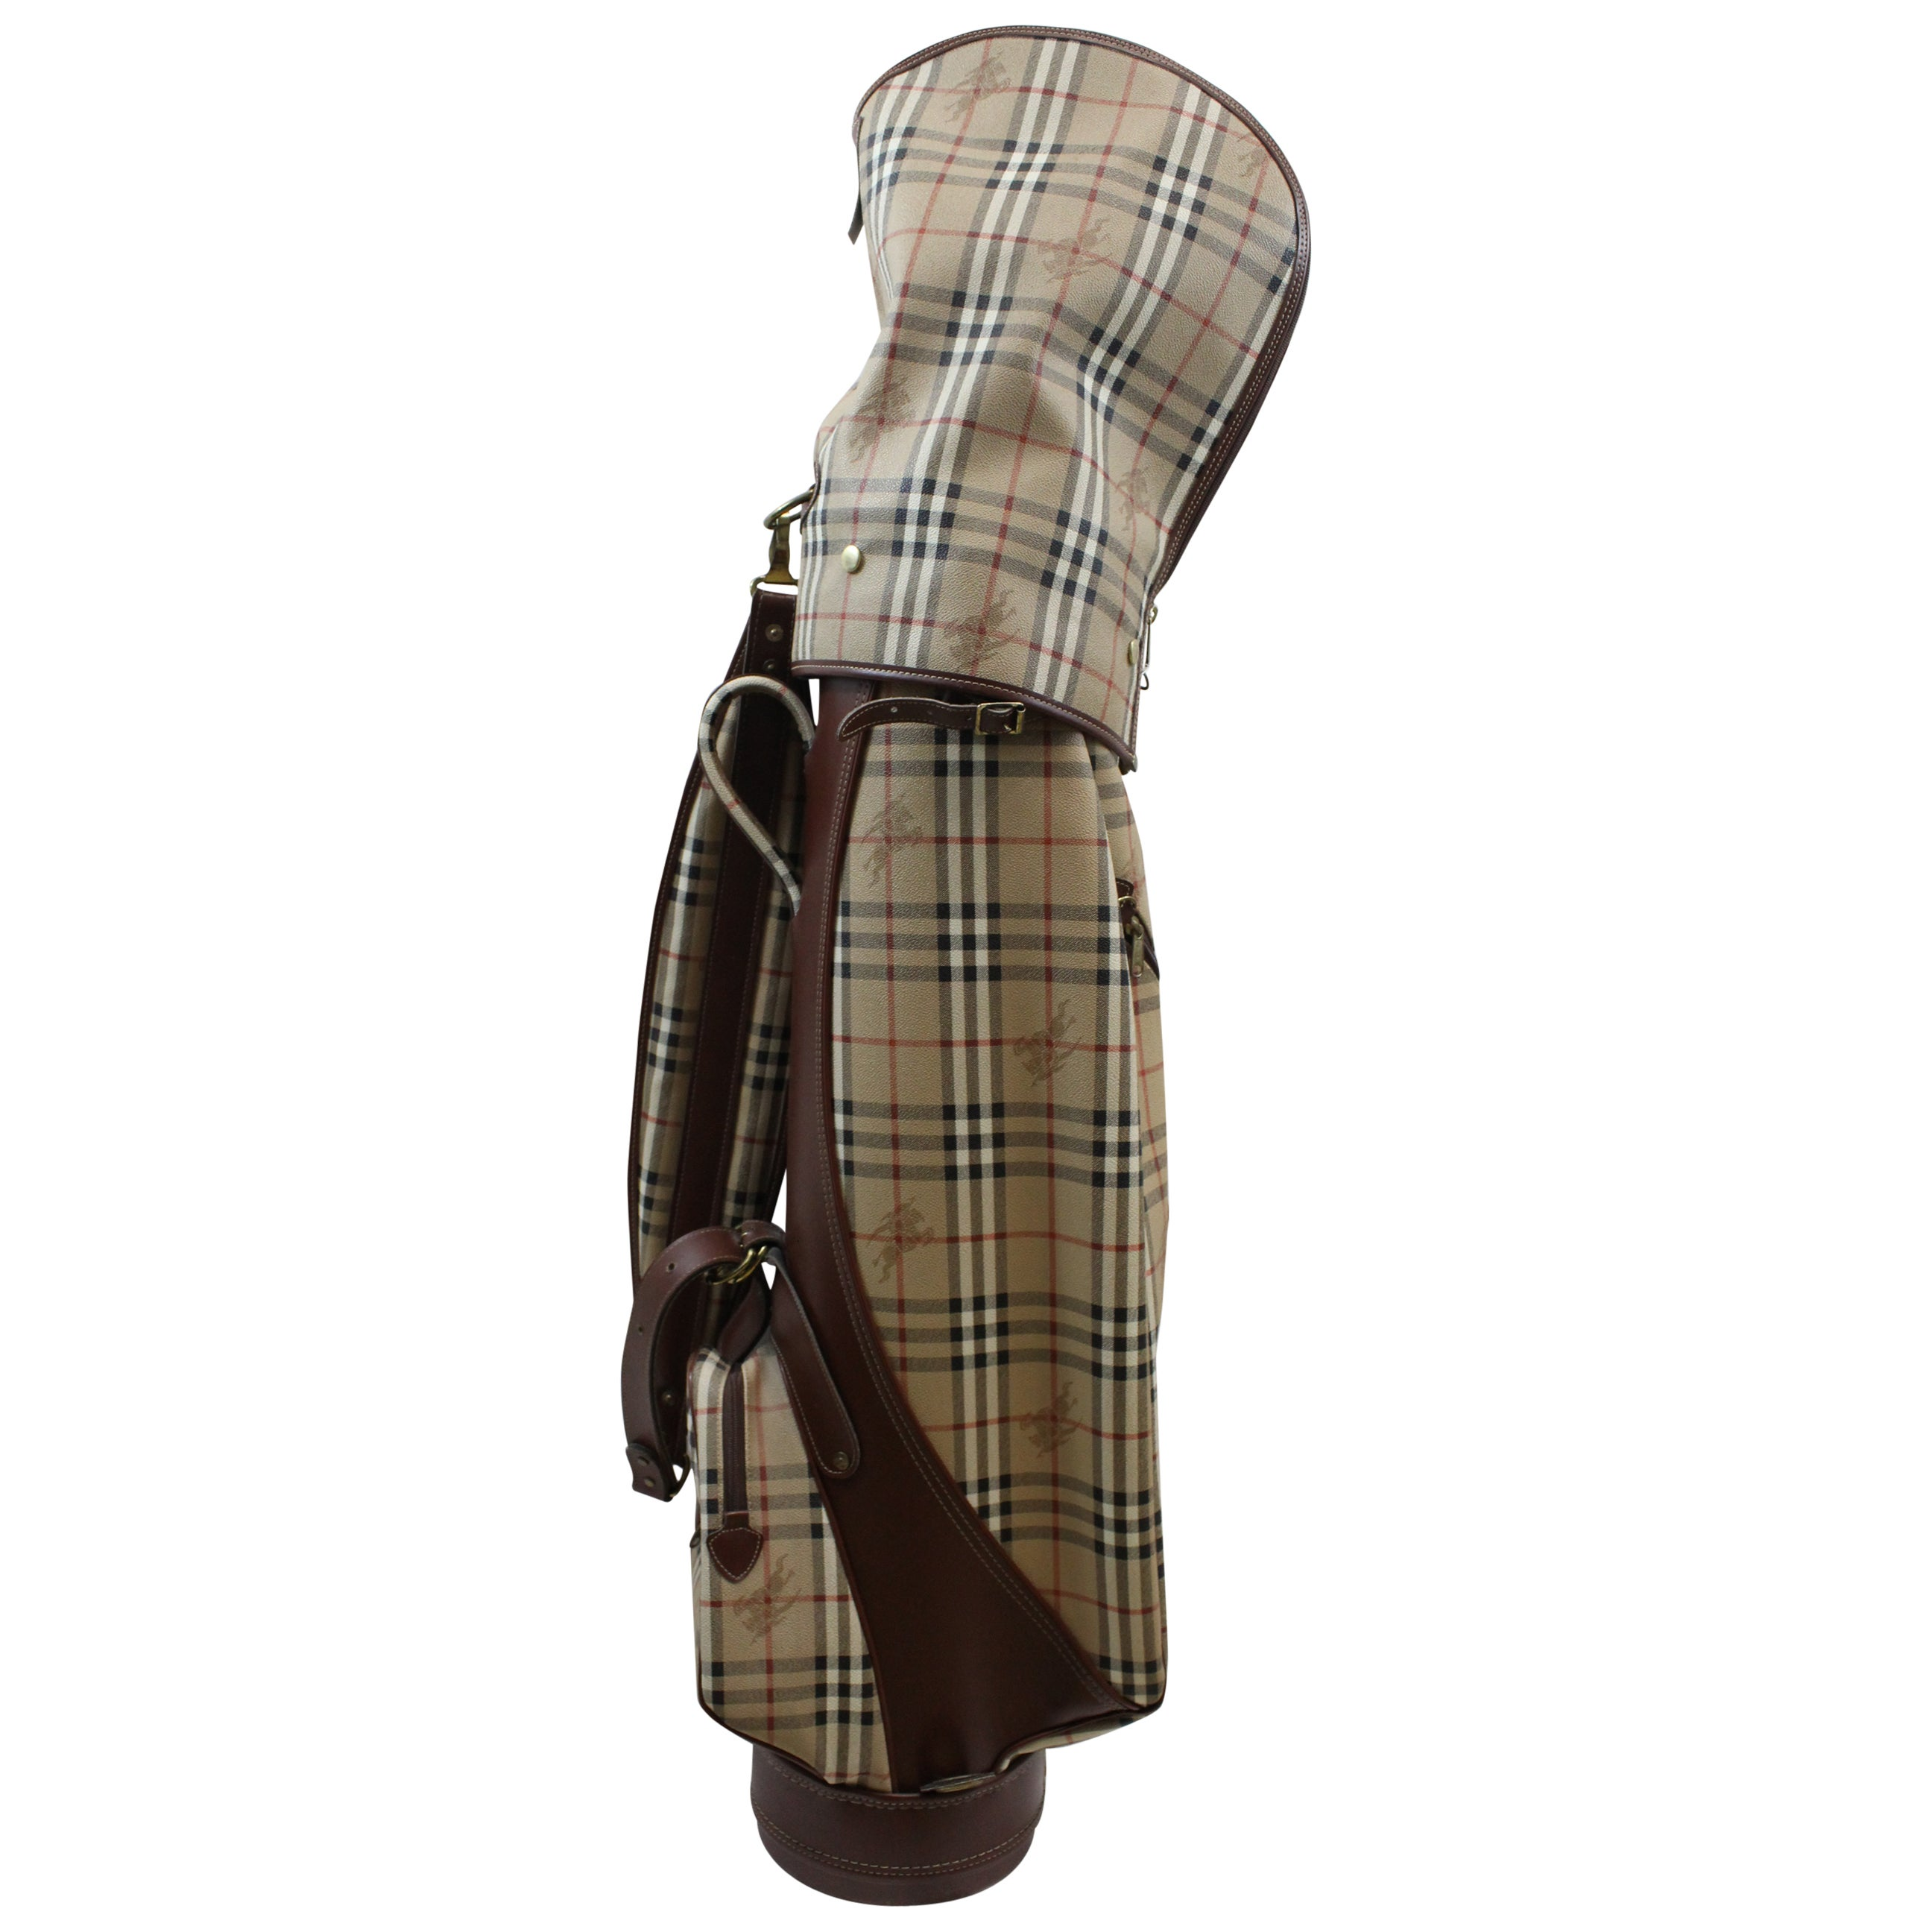 e51b3ce7cb46 Vintage Burberry Check Pattern Golf Bag at 1stdibs